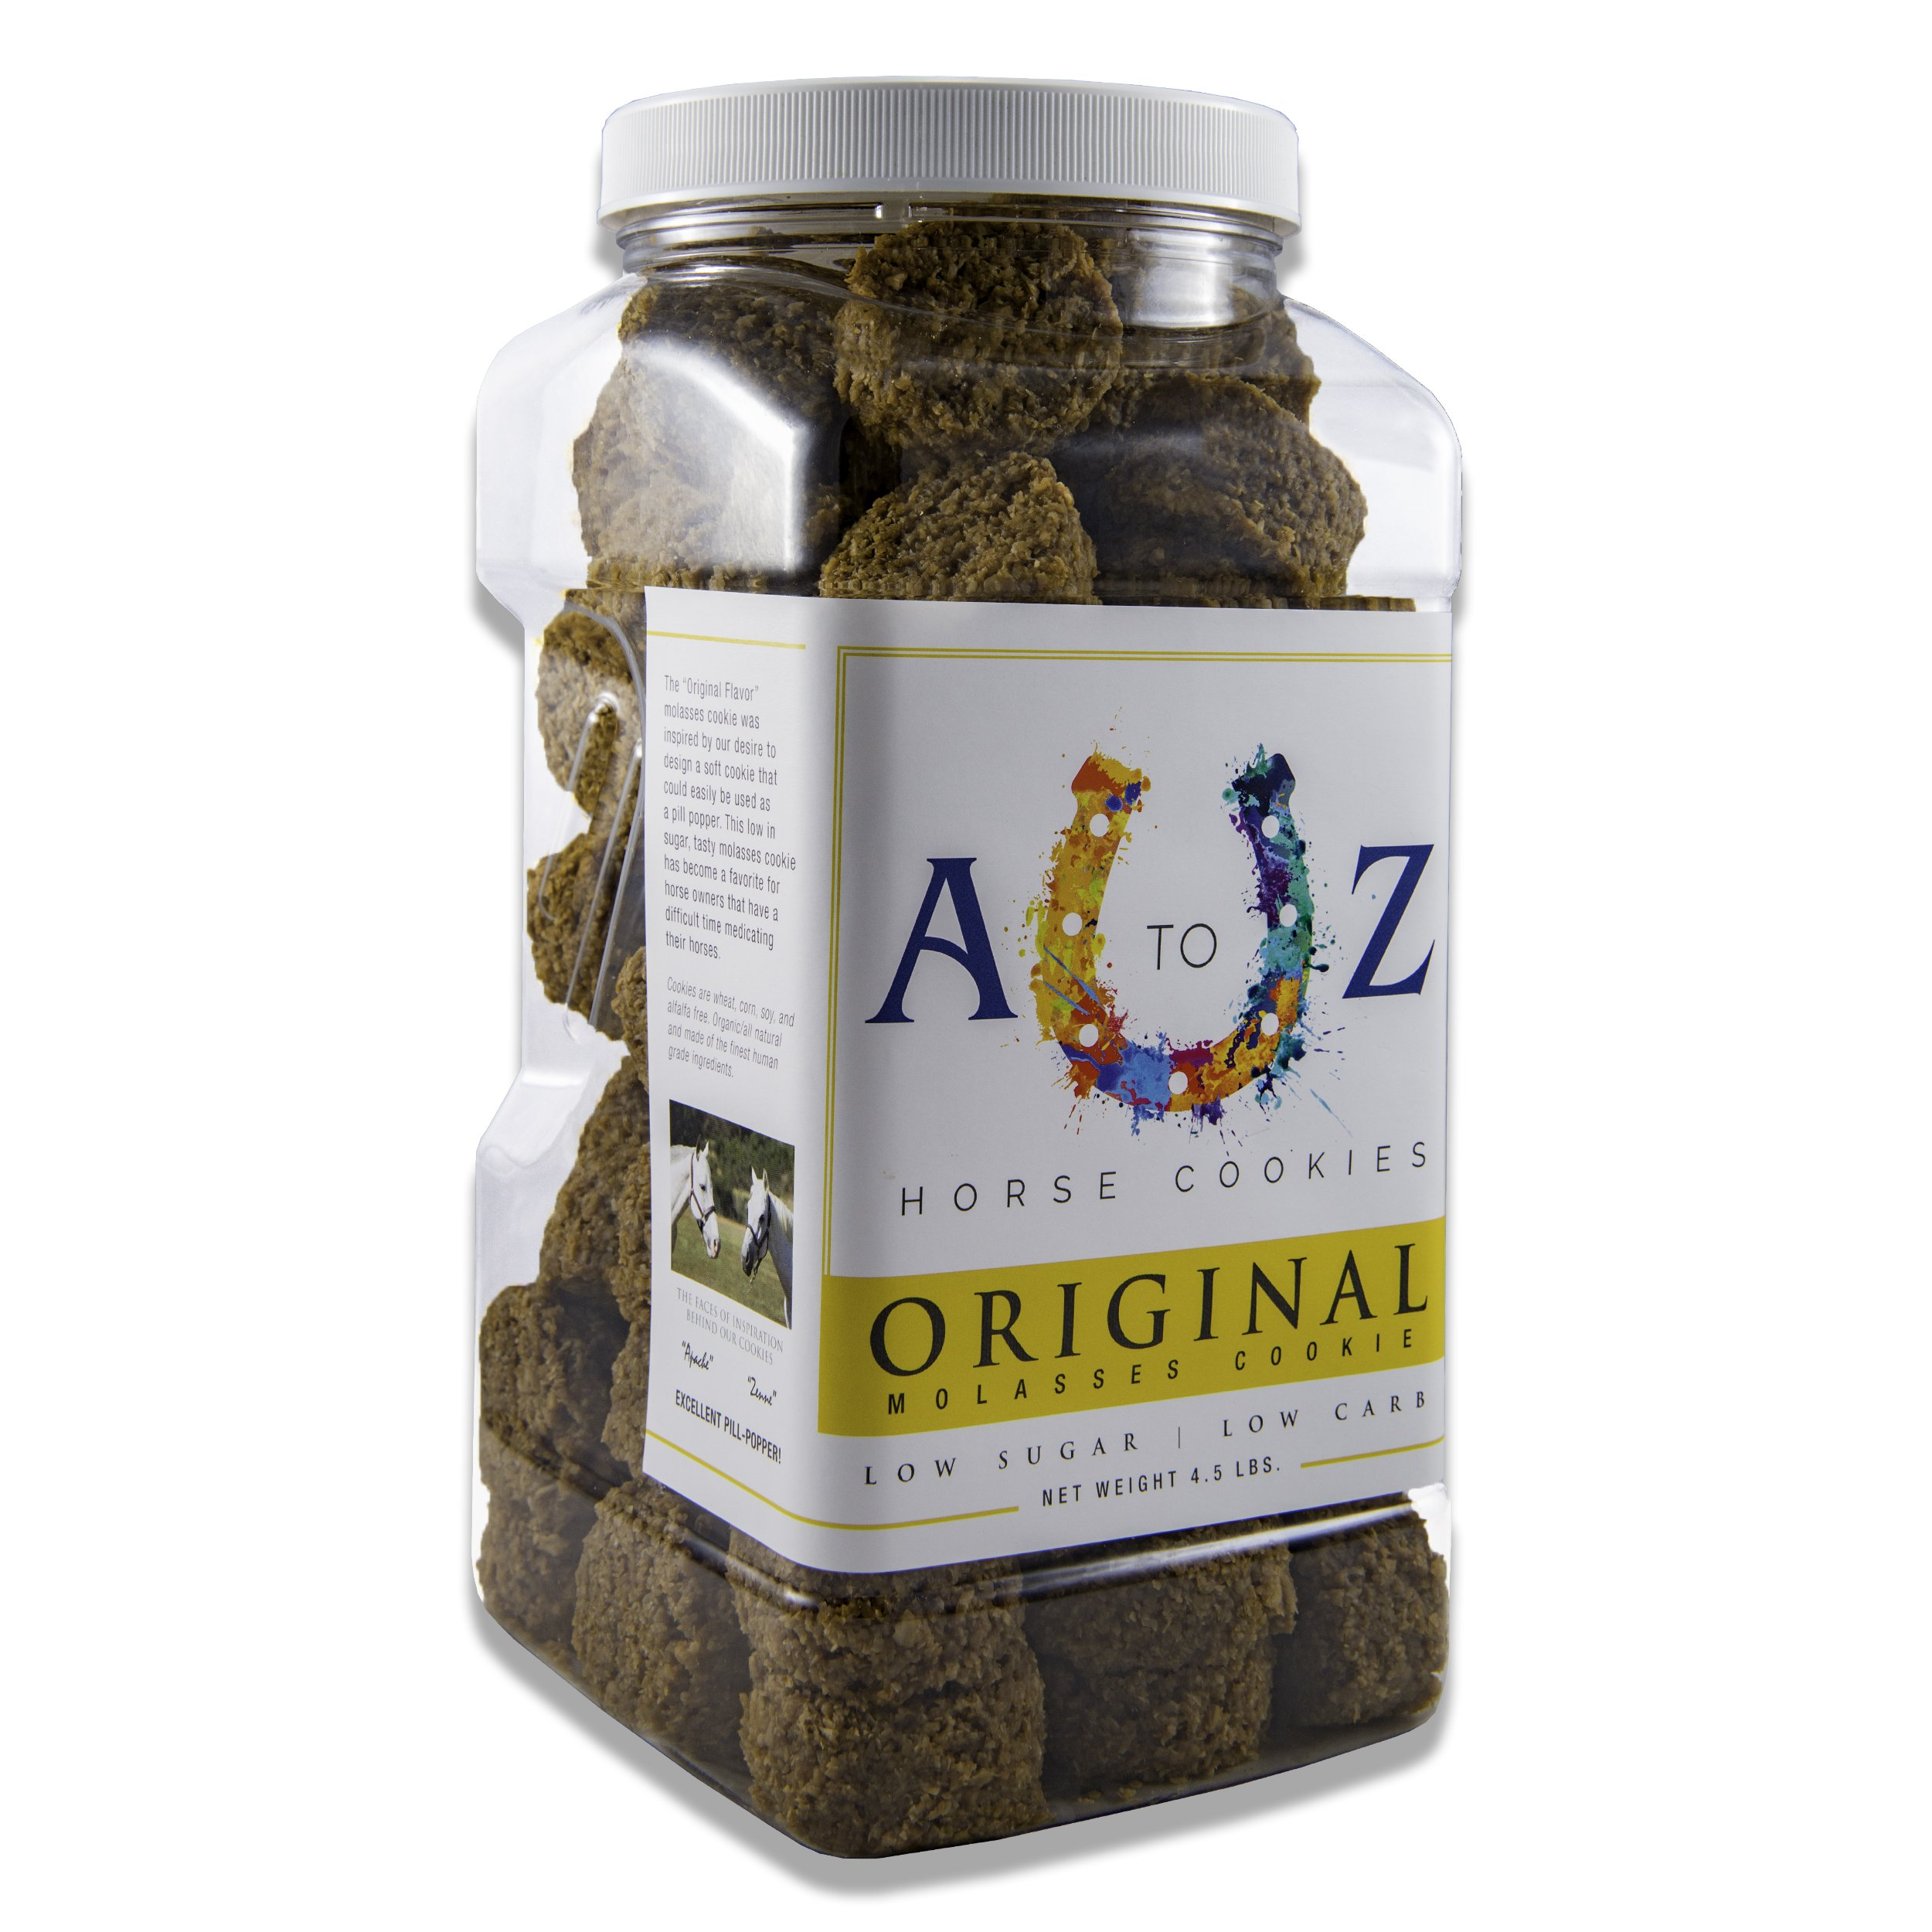 Horse Cookie Treat: Original Flavor by A to Z Horse Cookies, Low Carb Low Sugar Softer Treats, Organic, Great For All Horses And Excellent For Those With Metabolic Conditions, 4.5 lbs Jar by A to Z Horse Cookies (Image #1)